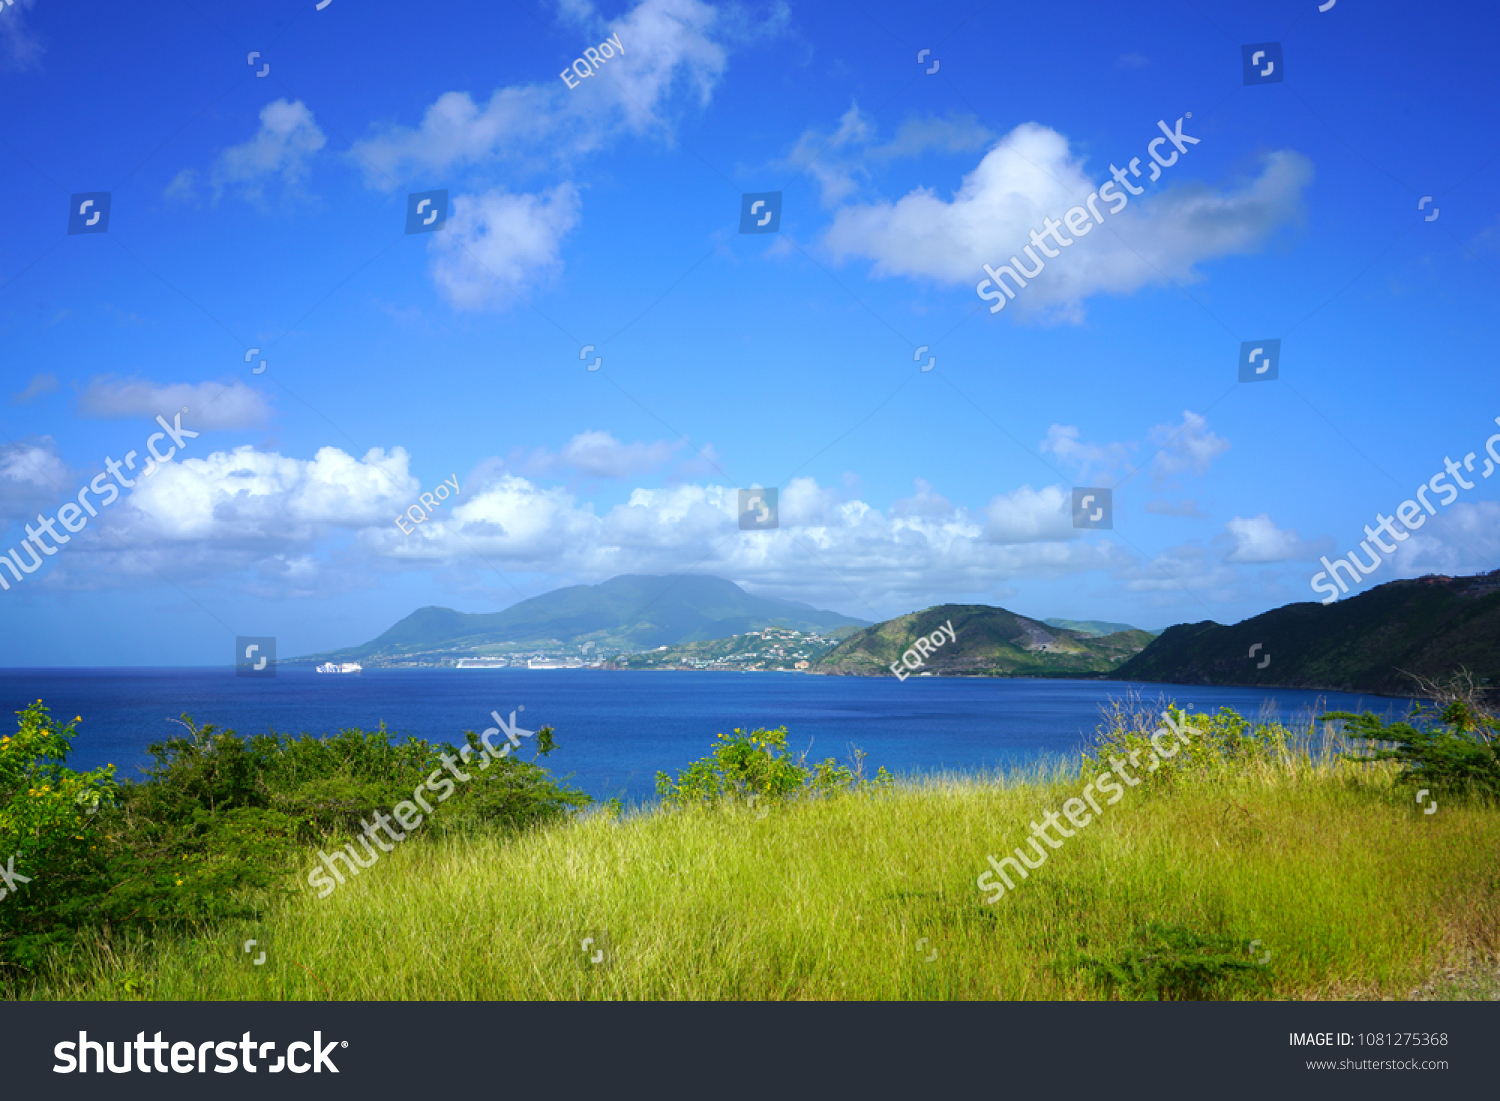 Landscape view of Basseterre Bay in the Caribbean Sea in the Christophe Harbour area in the island of St Kitts, St Kitts and Nevis #1081275368